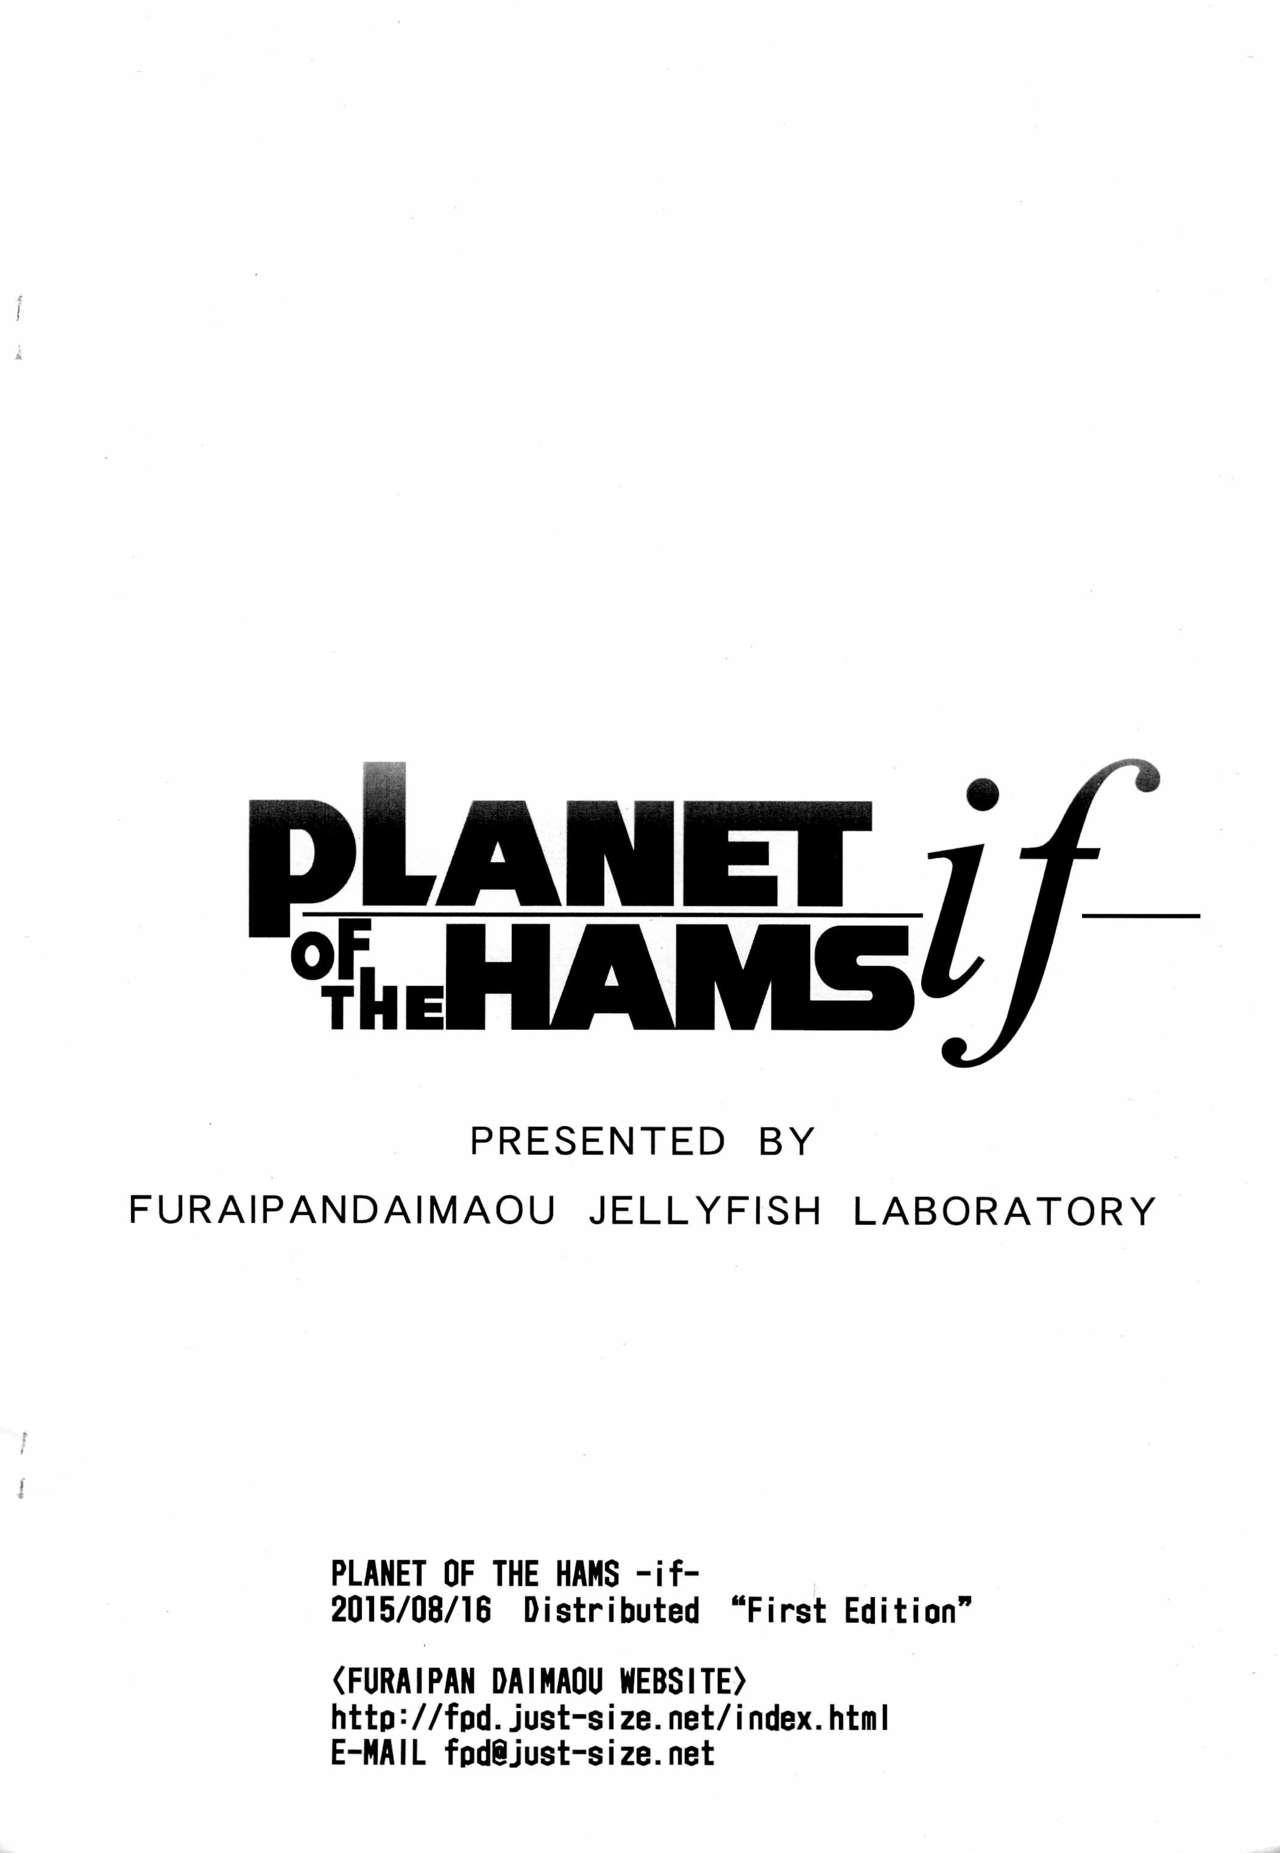 PLANET OF THE HAMS if 7